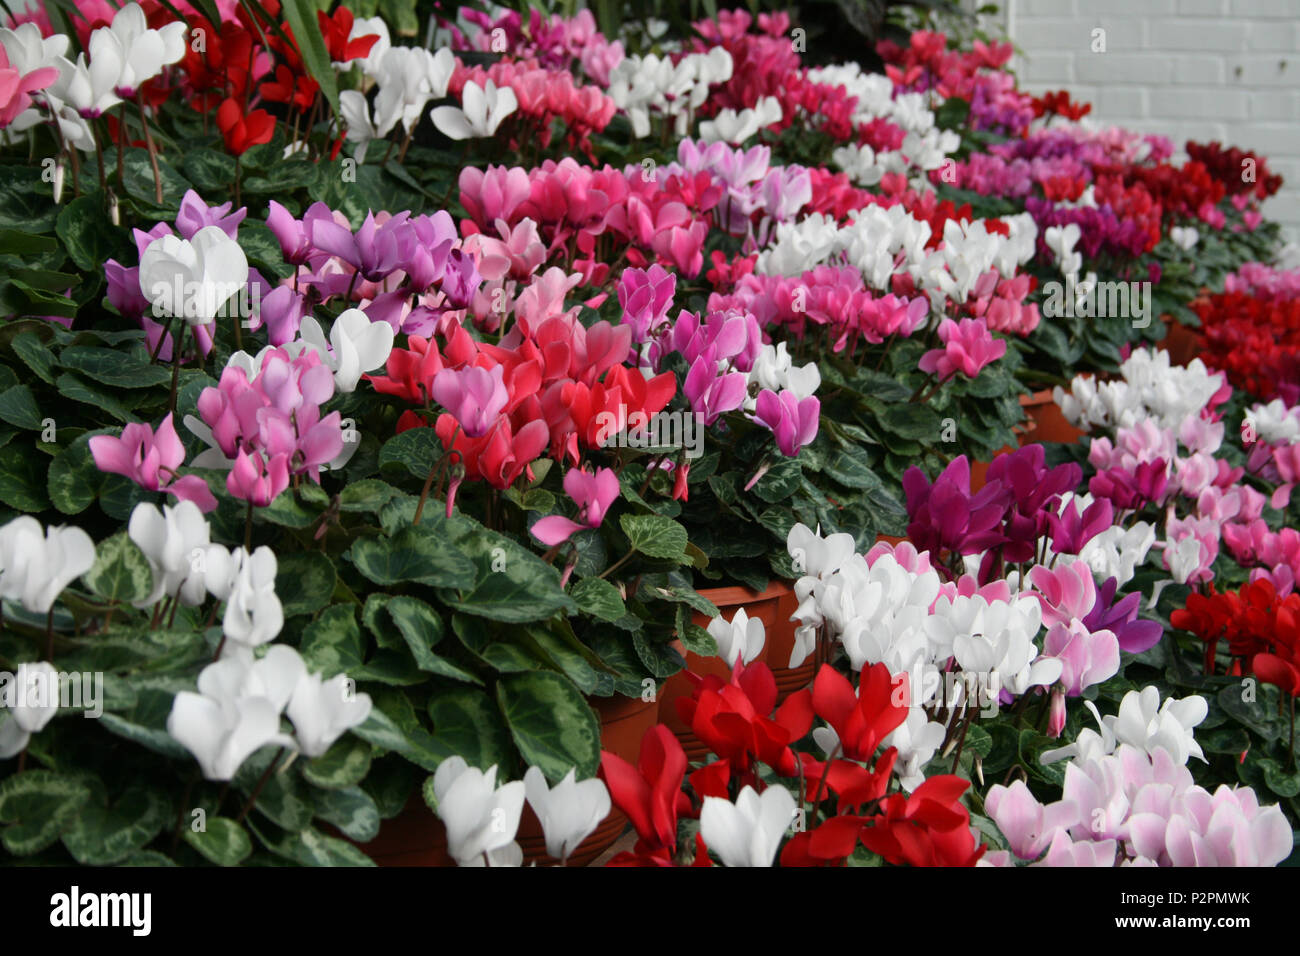 Colorful Cyclamen flowers which grow from tubers and are valued for their  upswept petals and patterned leaves. - Stock Image